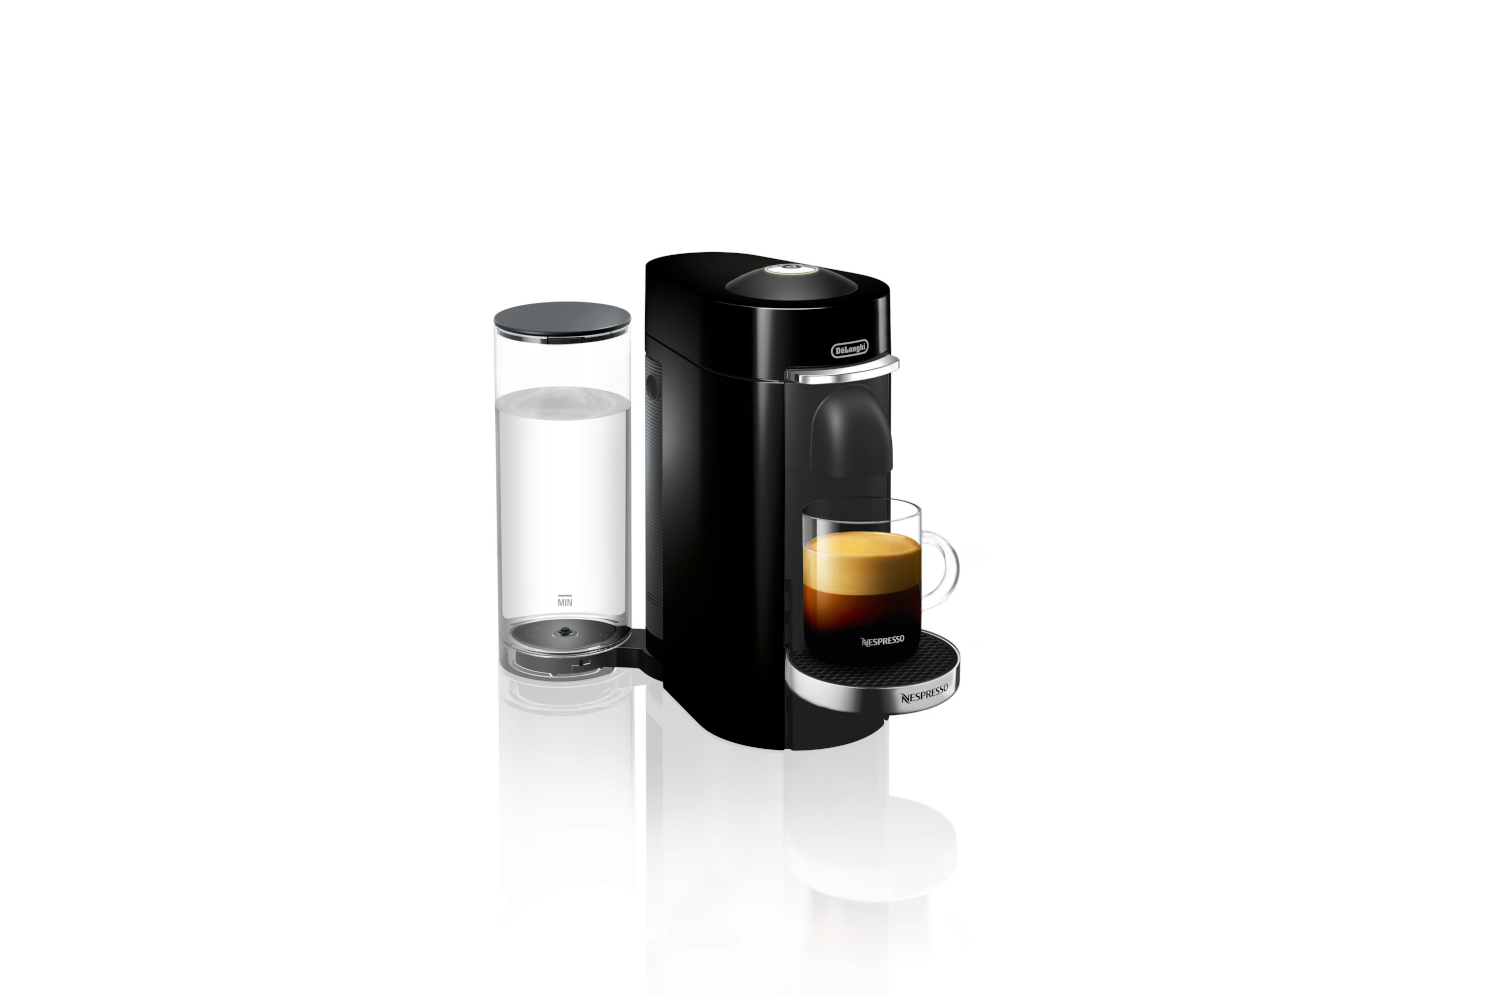 Nespresso VertuoPlus Deluxe Coffee & Espresso Machine by De'Longhi - Black